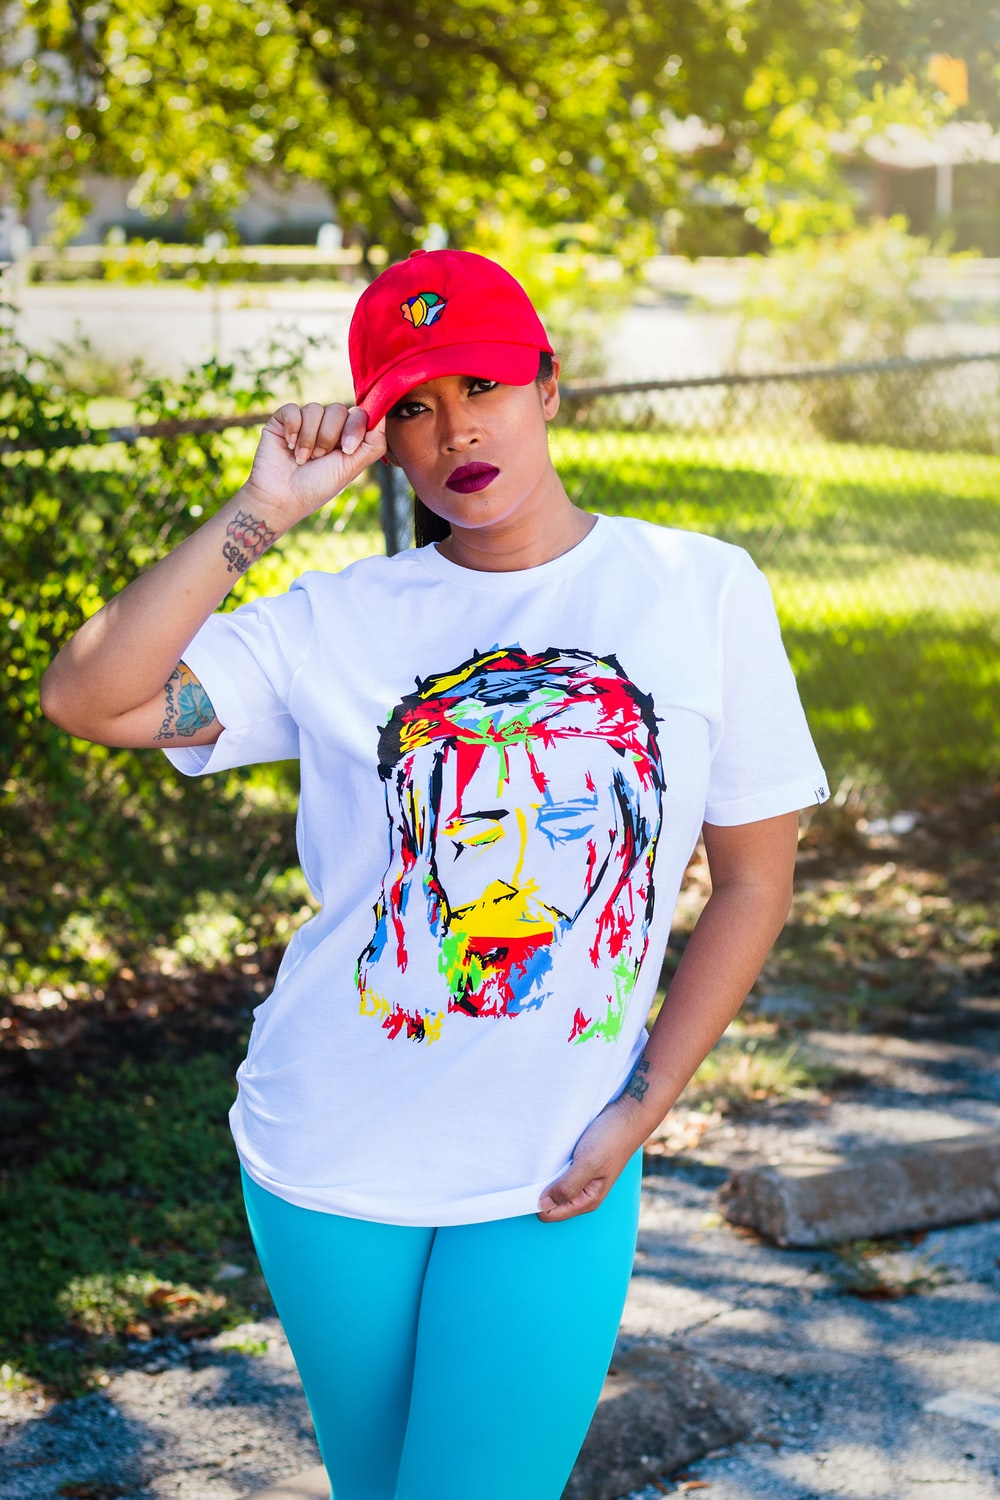 woman wearing cap, t-shirt, and teal pants during day